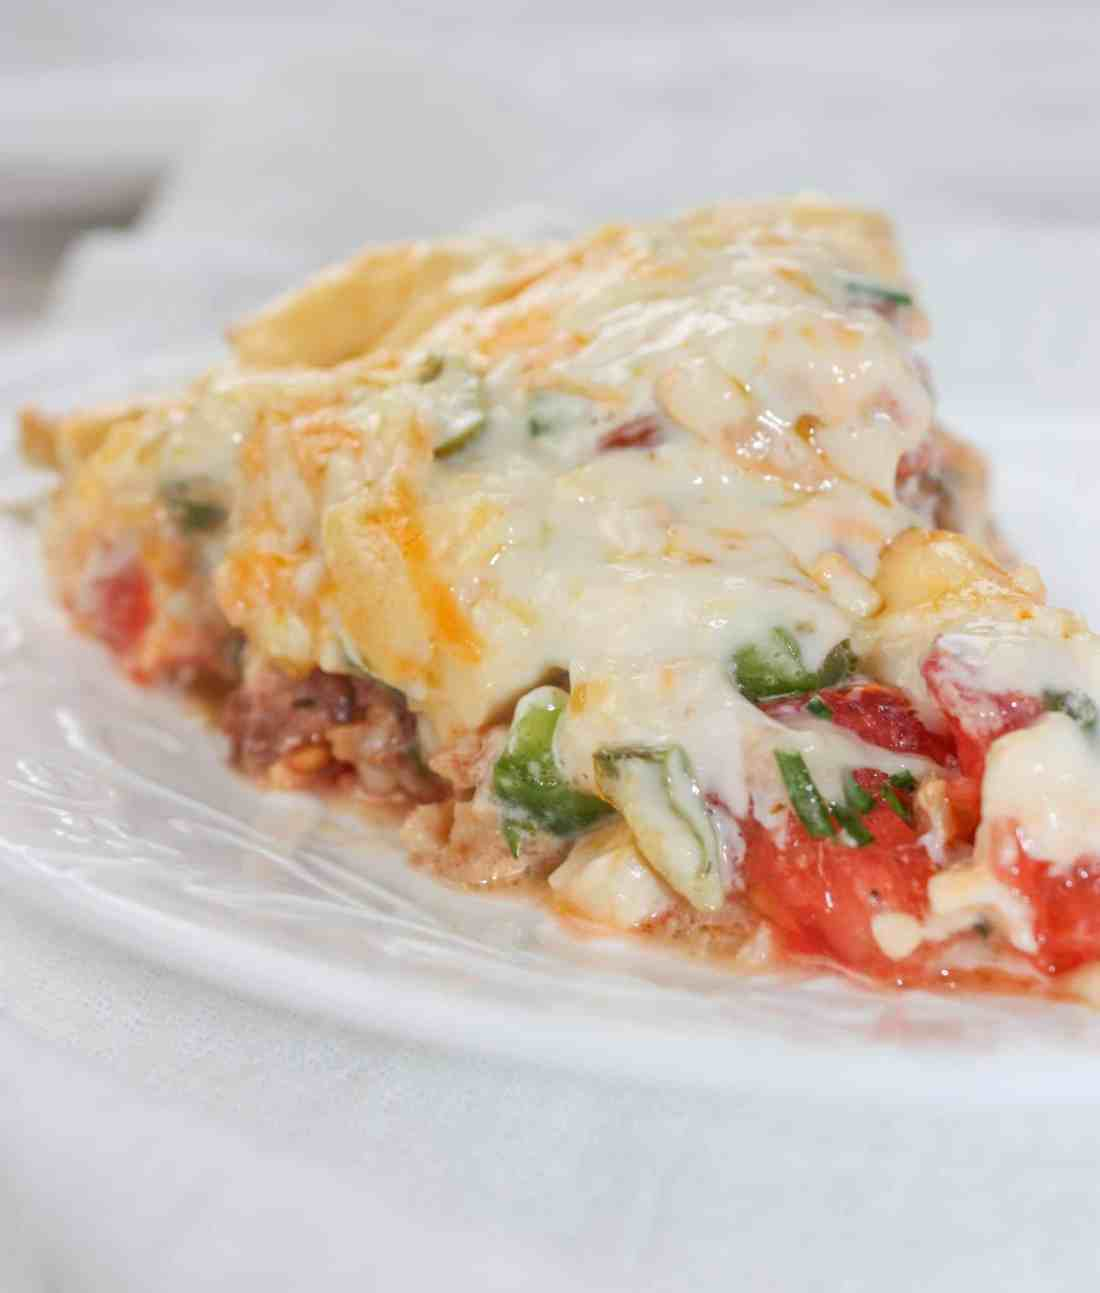 Tomato Pie is a versatile and tasty recipe that can easily be made gluten free with your choice of pie crust. This cheesy, tomato dish can stand alone or complement any main course.